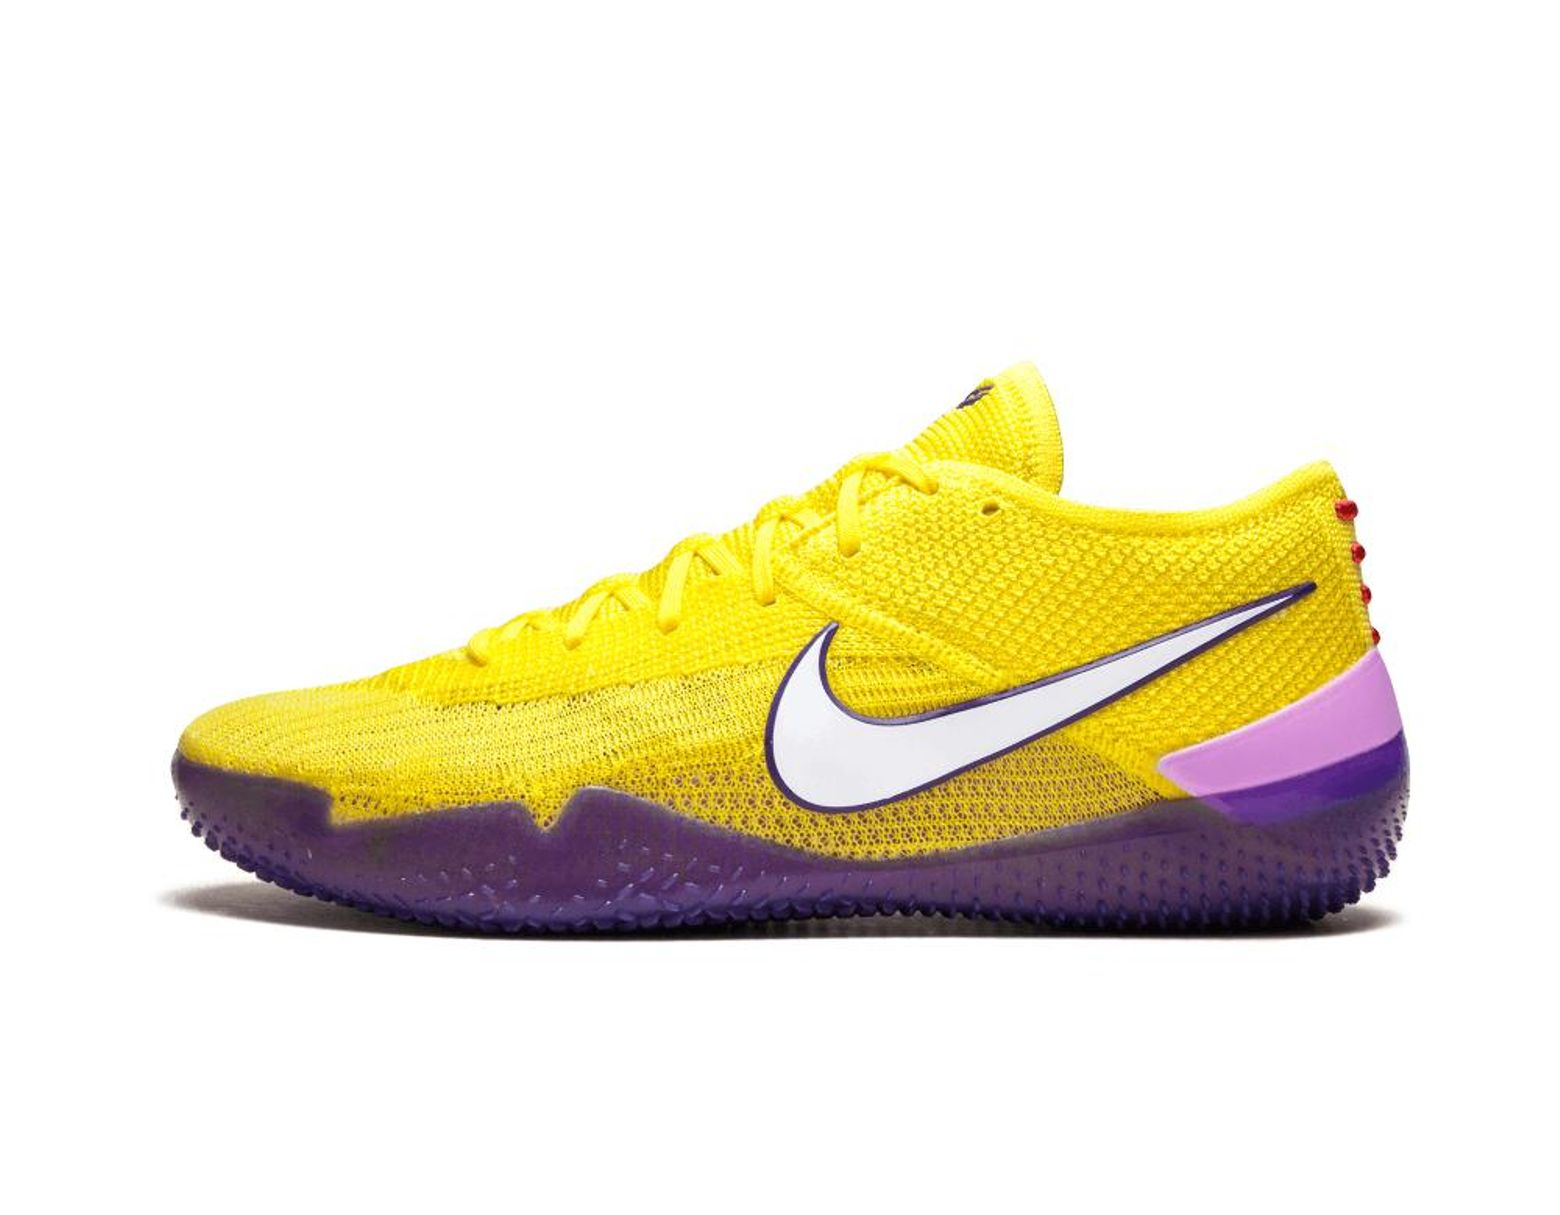 huge discount c618f 06b12 Lyst - Nike Kobe Ad Nxt 360 in Yellow for Men - Save 30%